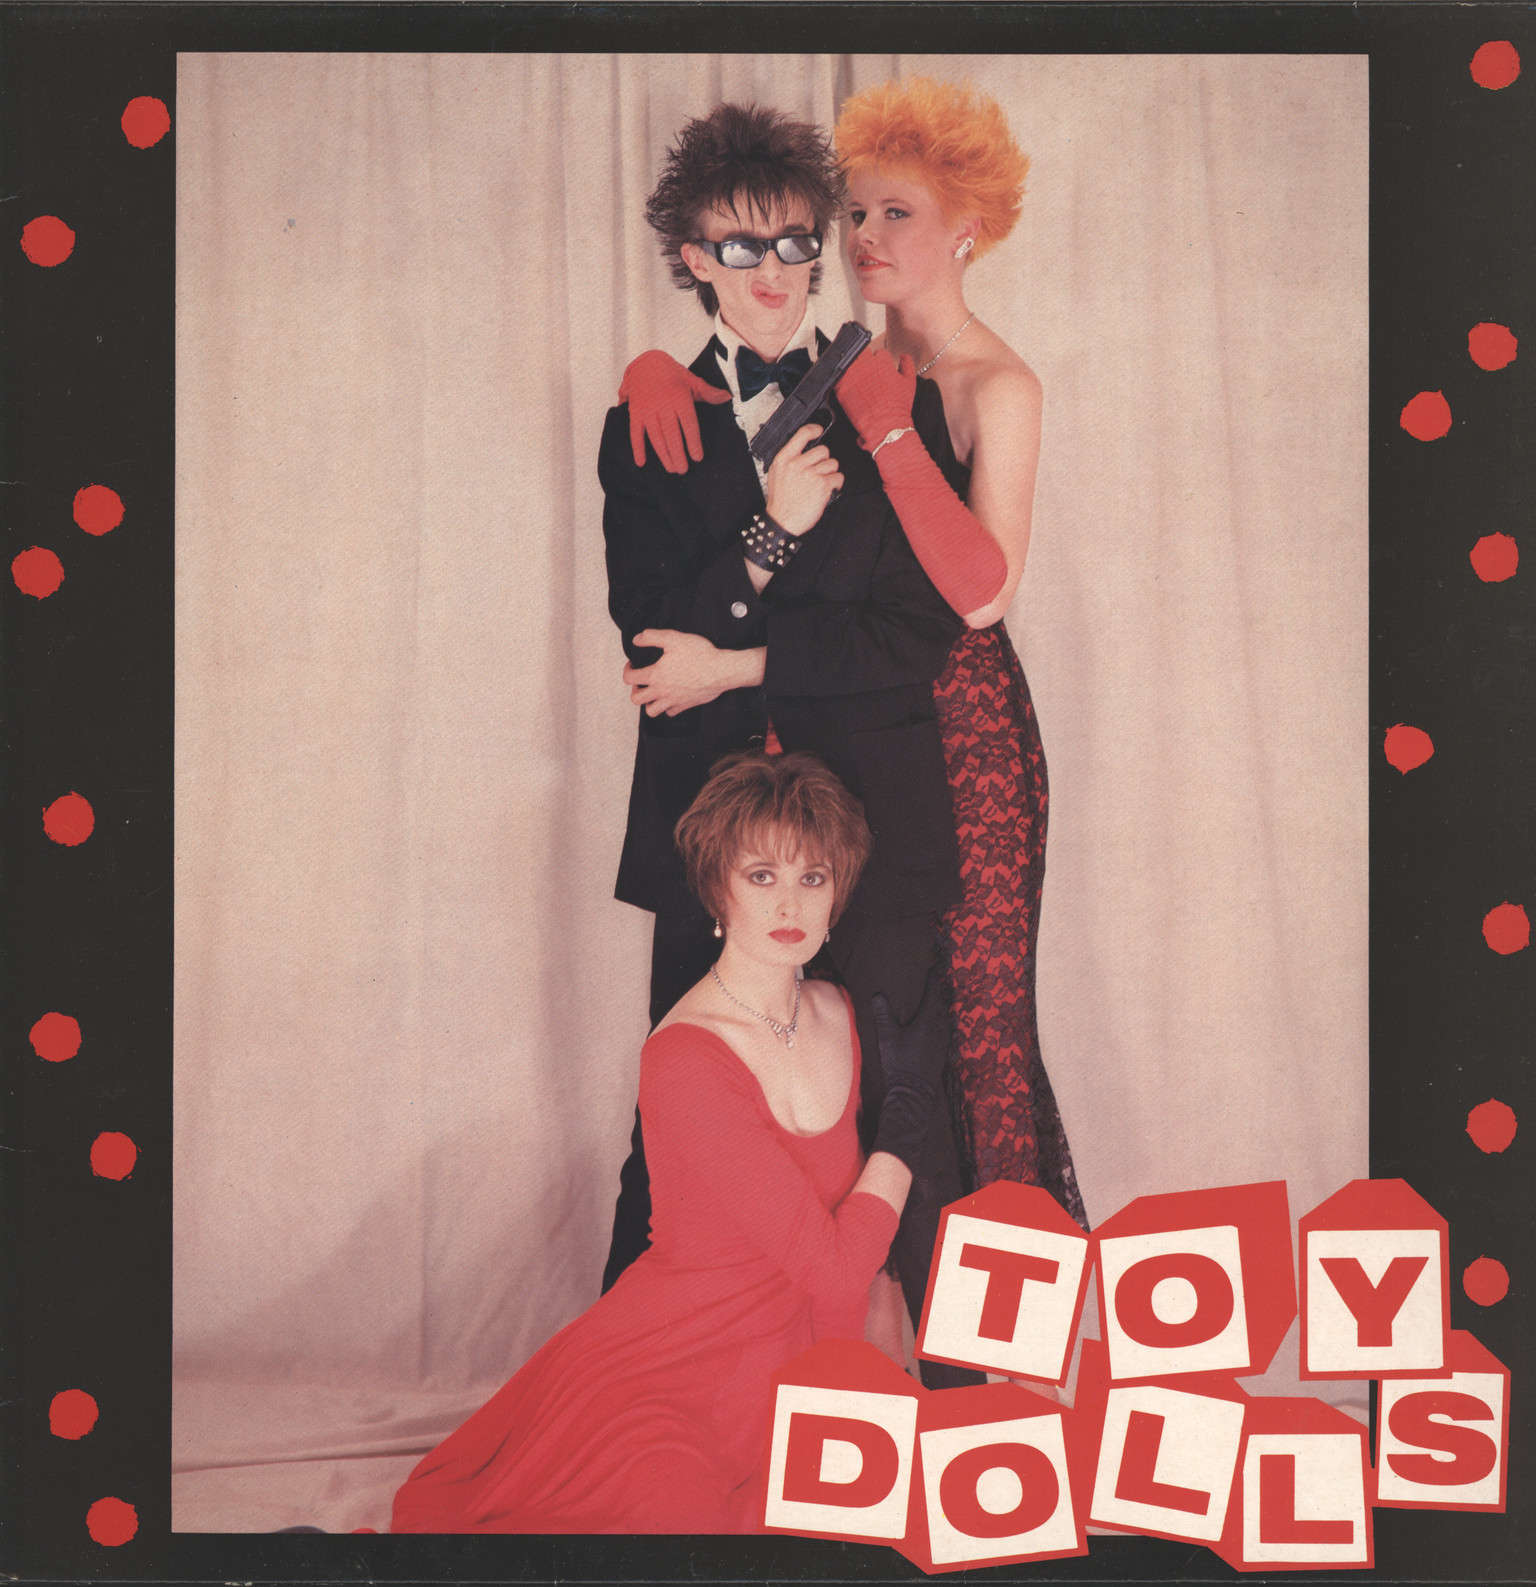 "Toy Dolls: James Bond (Lives Down Our Street), 12"" Maxi Single (Vinyl)"